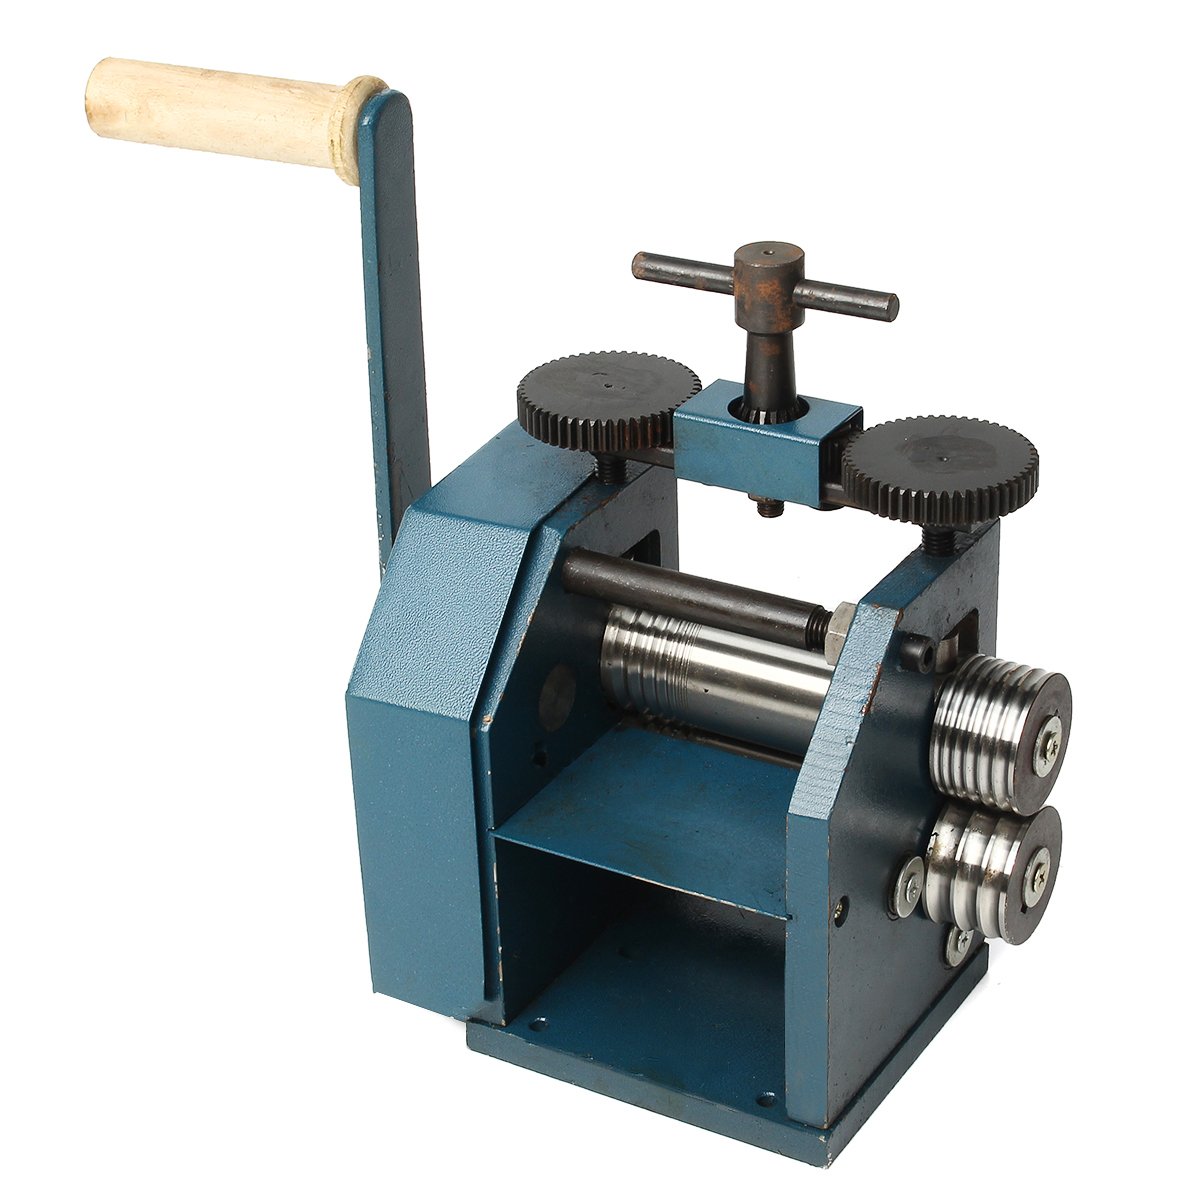 Combination Rolling Mill Rollers Manual Rolling Mill Machine Jewelry Press Tool